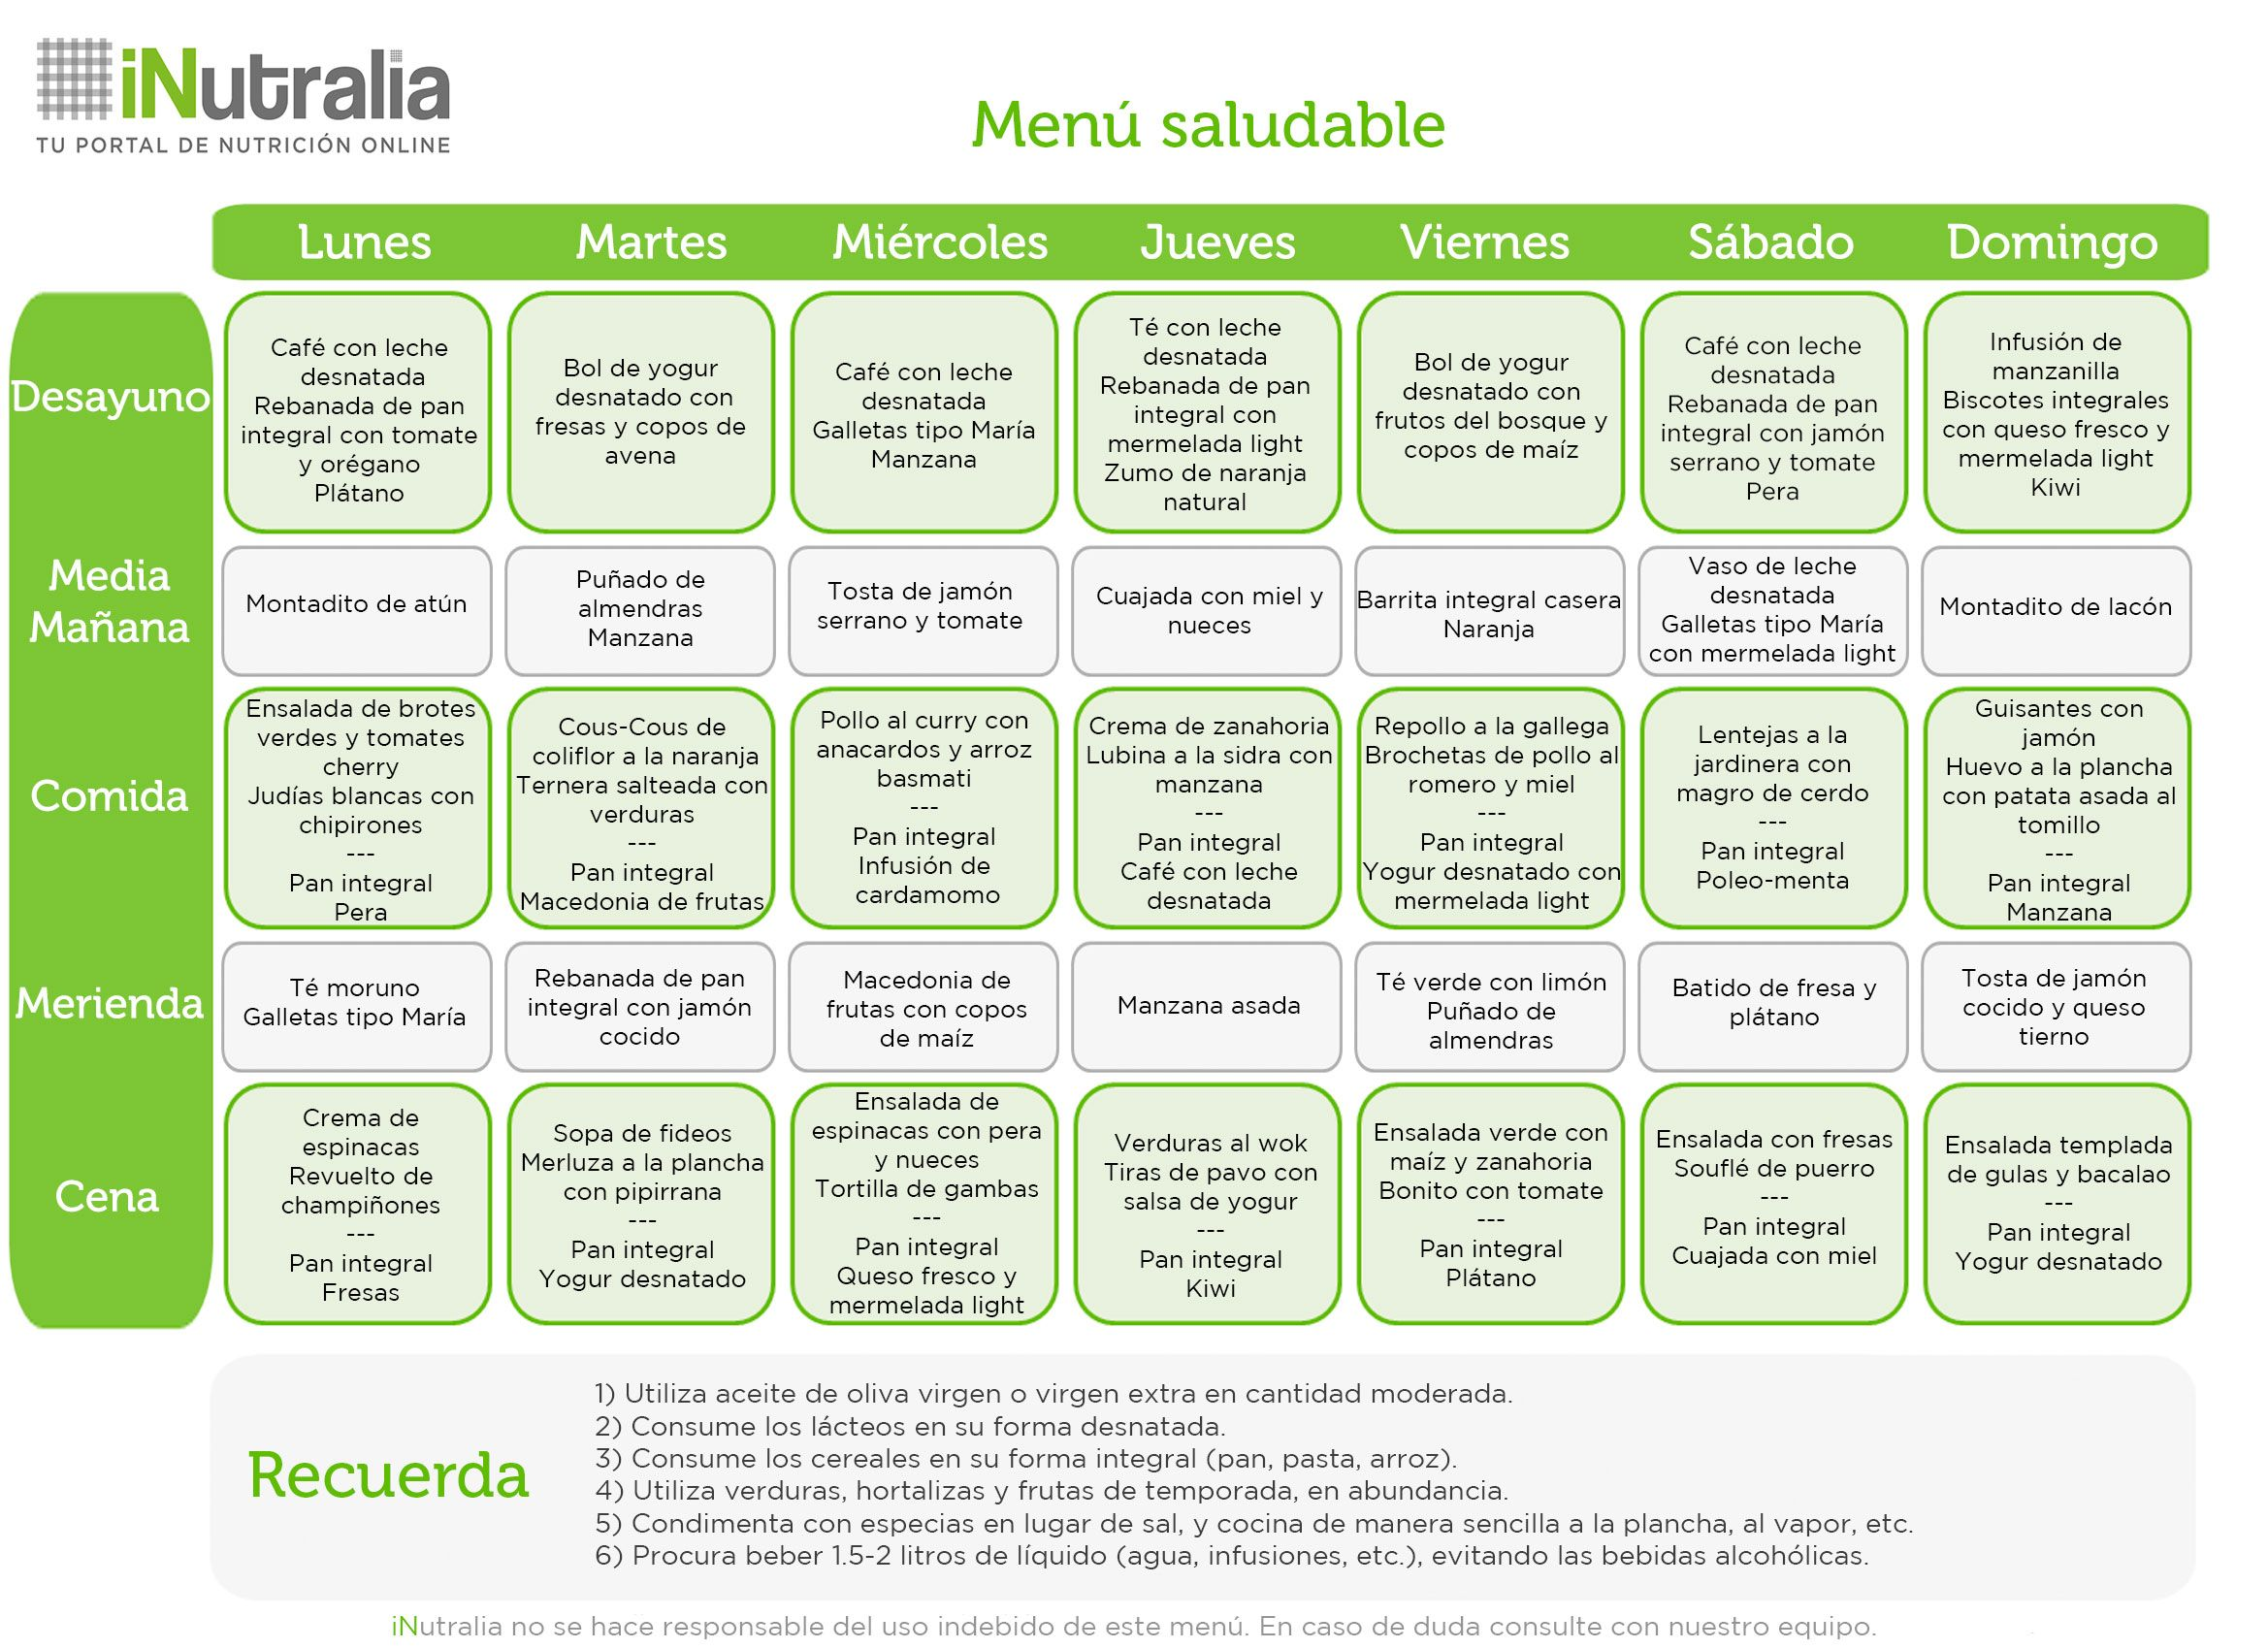 Menu semanal saludable buscar con google pinteres for Menu semanal verano